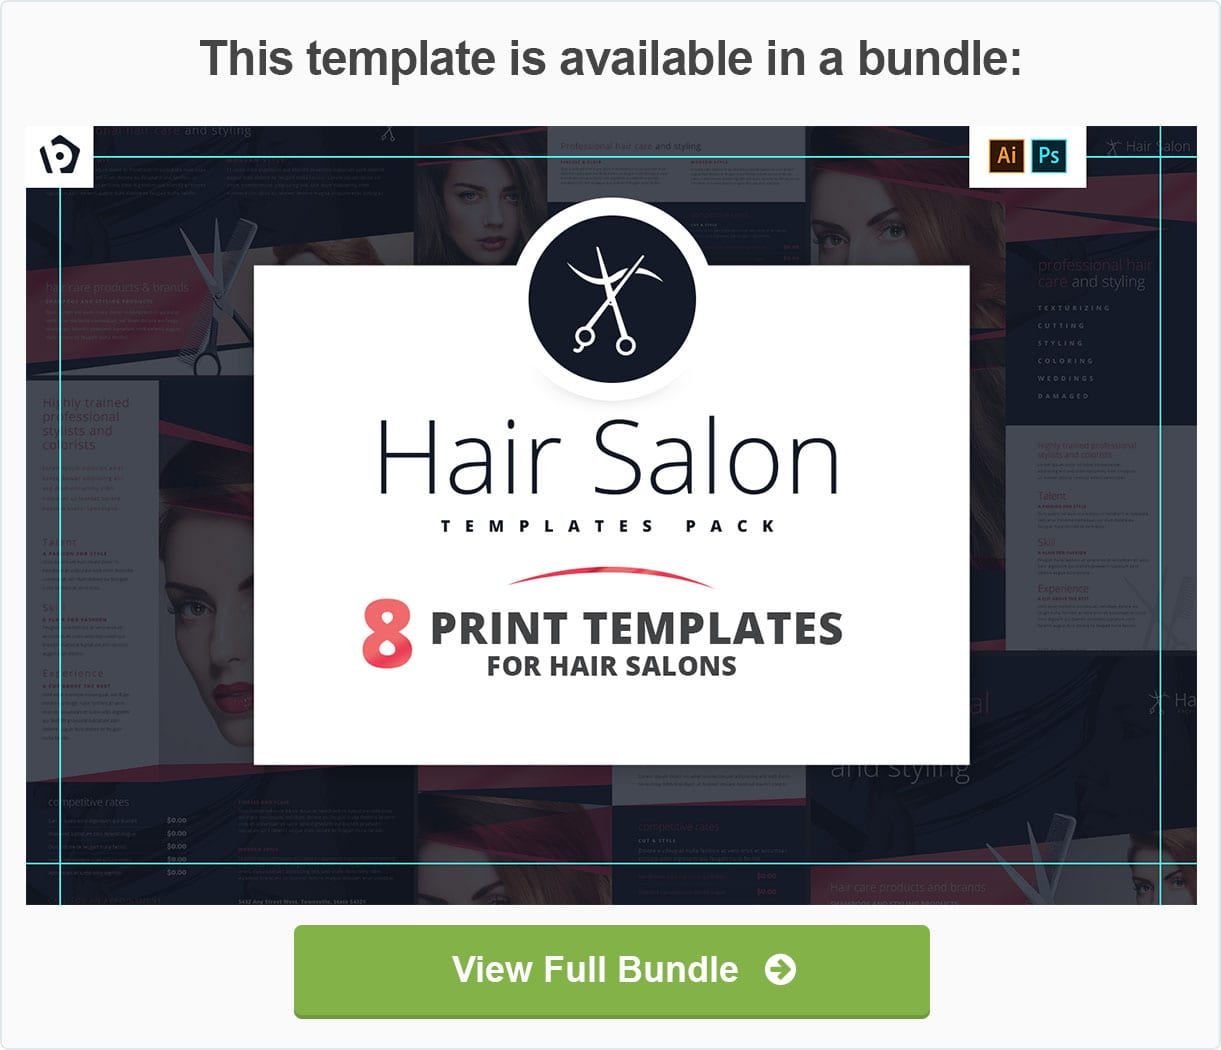 Hair Salon Templates Pack by BrandPacks